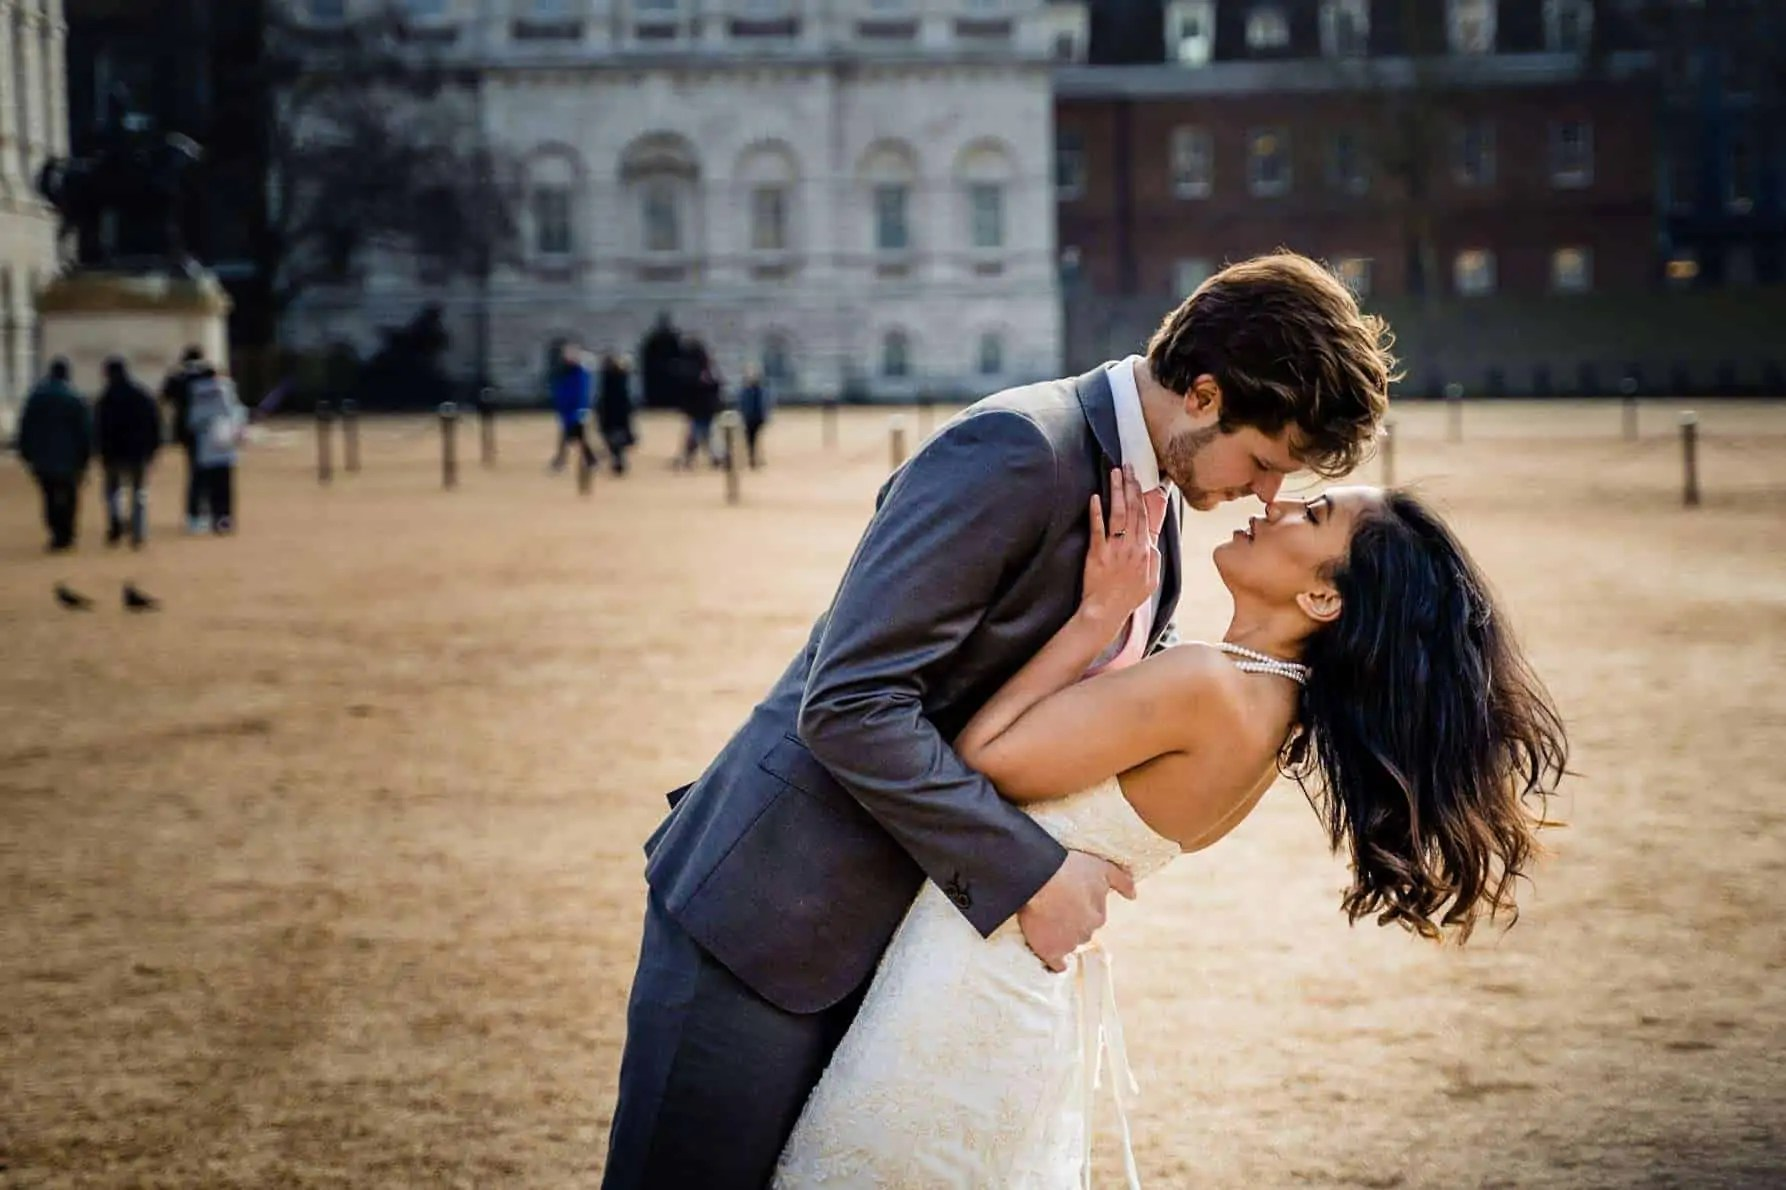 A newly engaged couple share a kiss in Horse Guards Parade, London